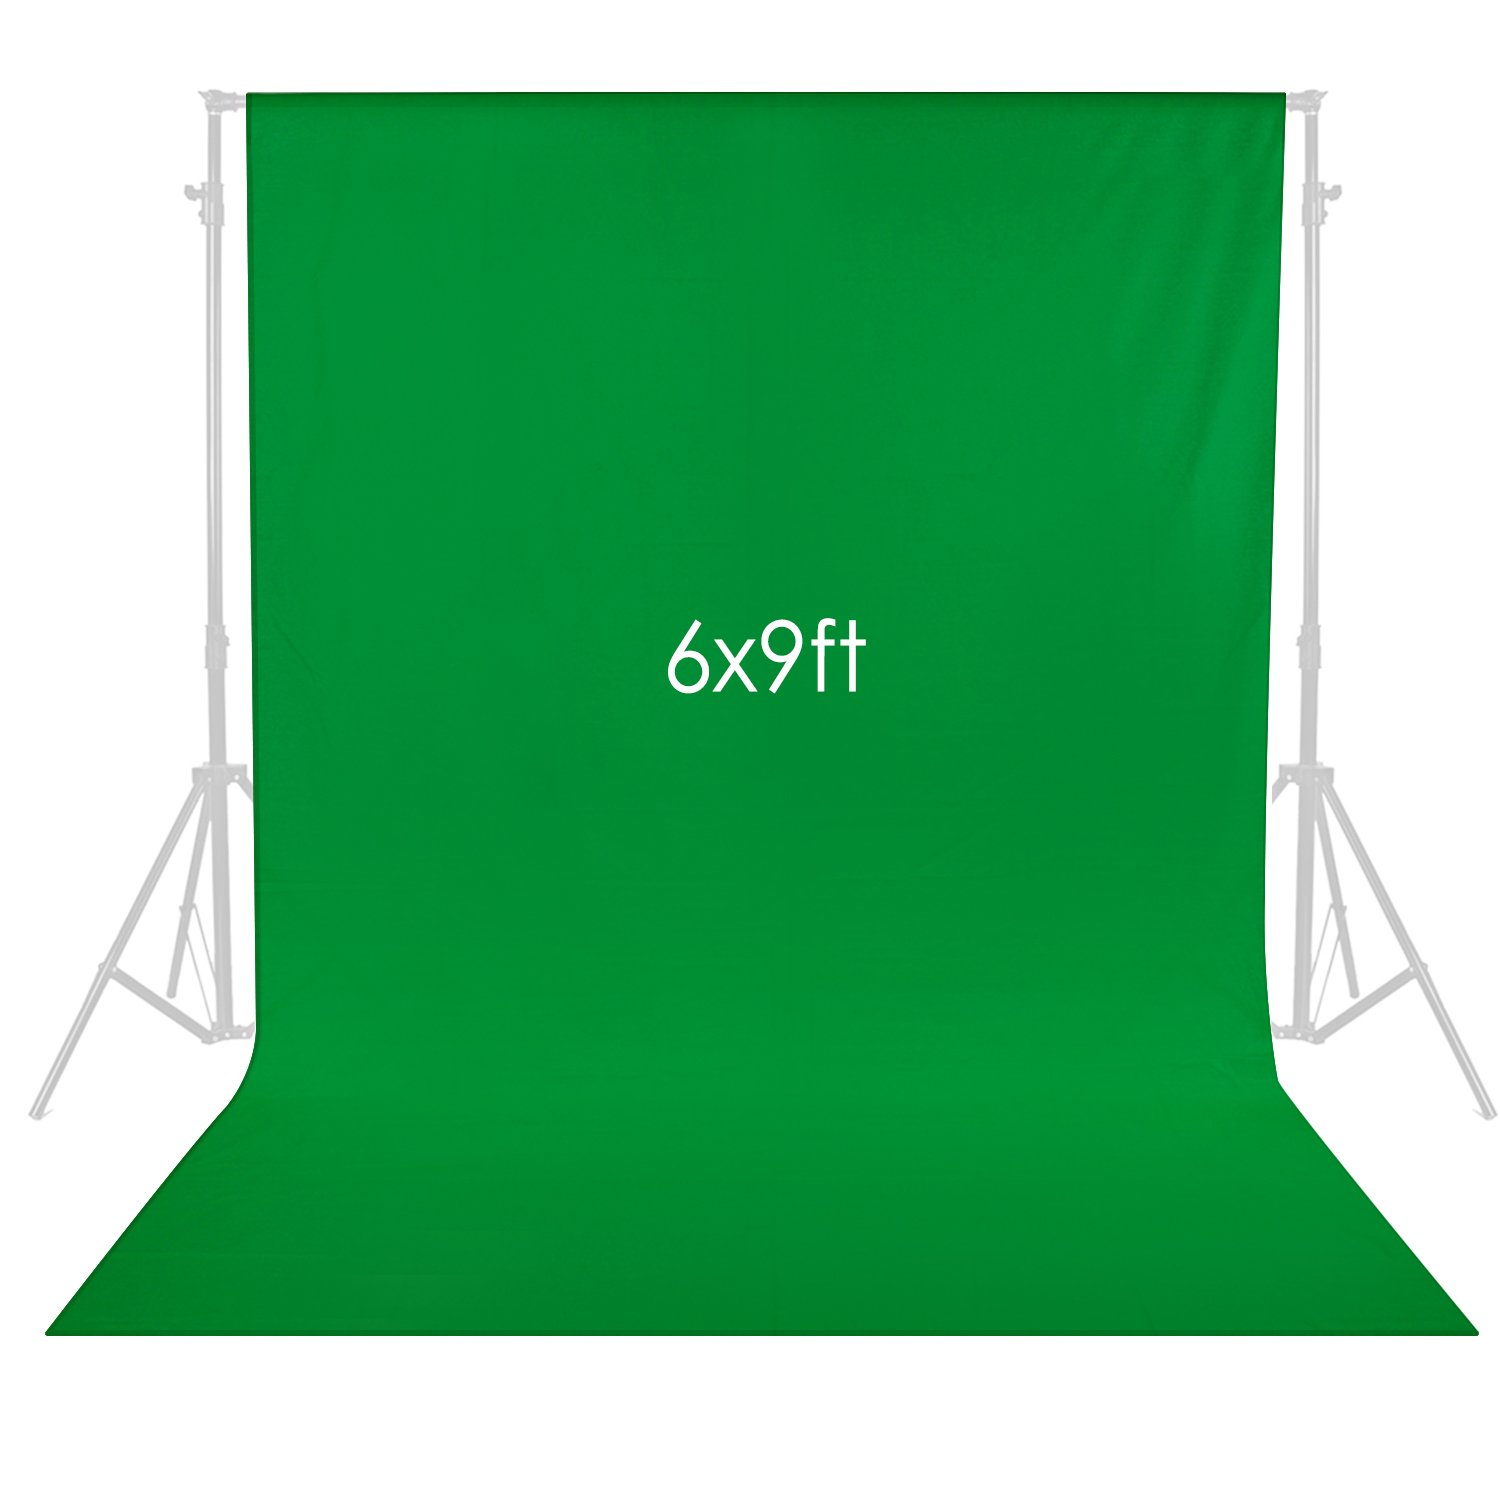 Neewer 6 x 9 feet/1.8 x 2.8 meters Photography Background Photo Video Studio Fabric Backdrop Background Screen (Green) by Neewer